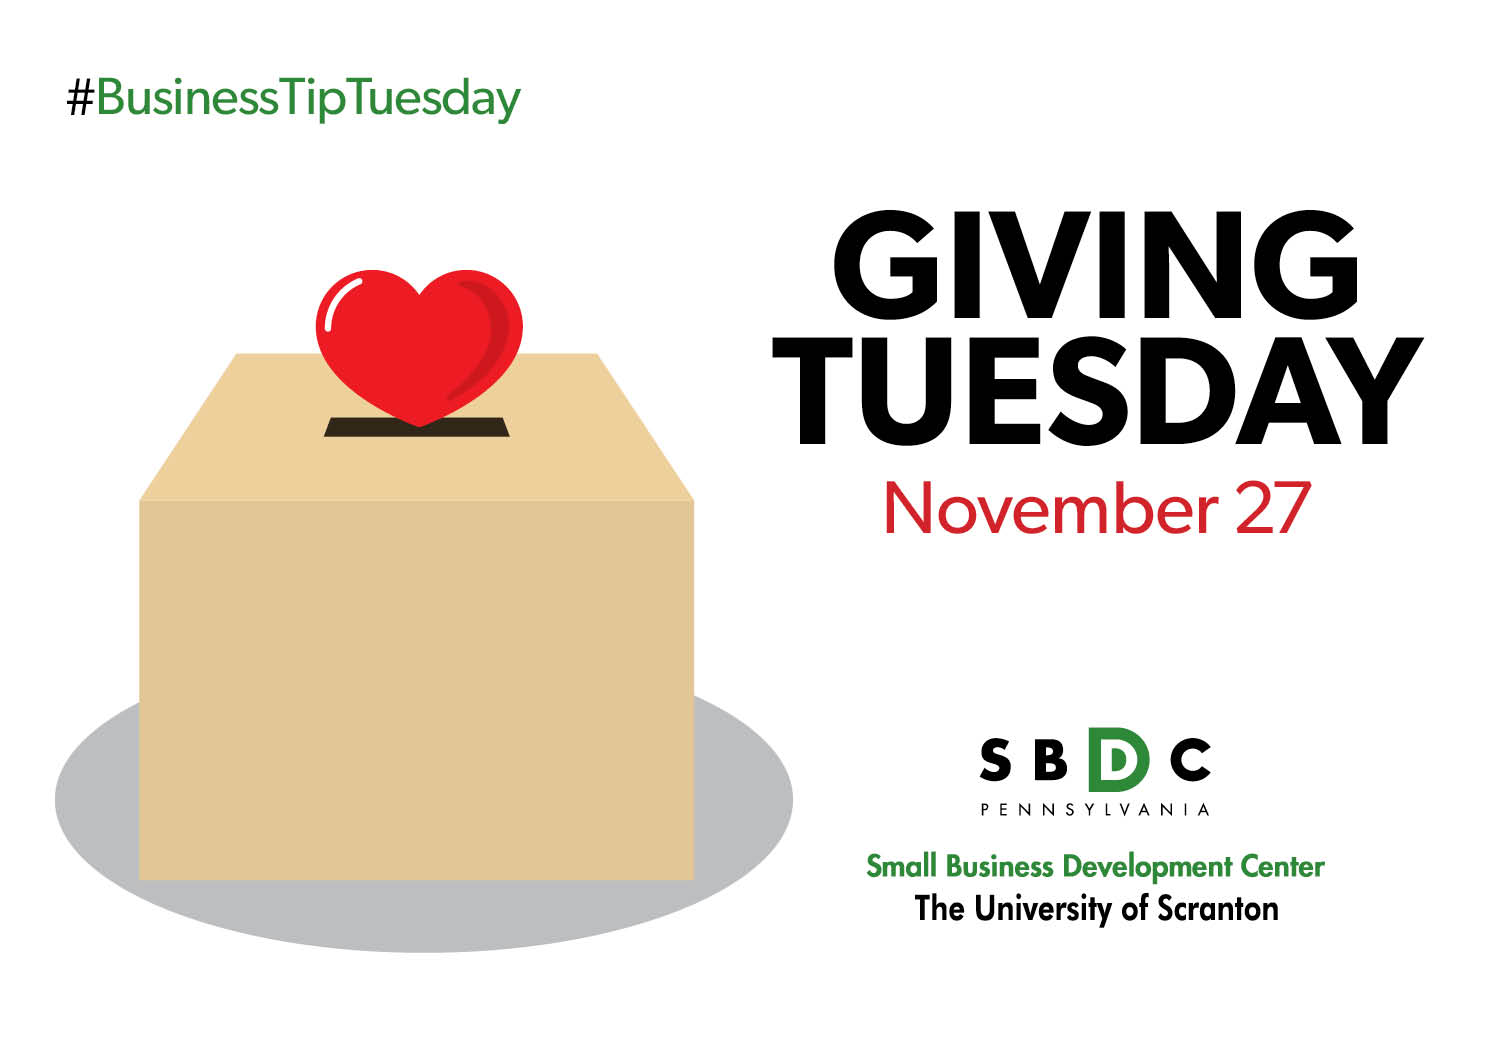 #BusinessTipTuesday – Giving Tuesday